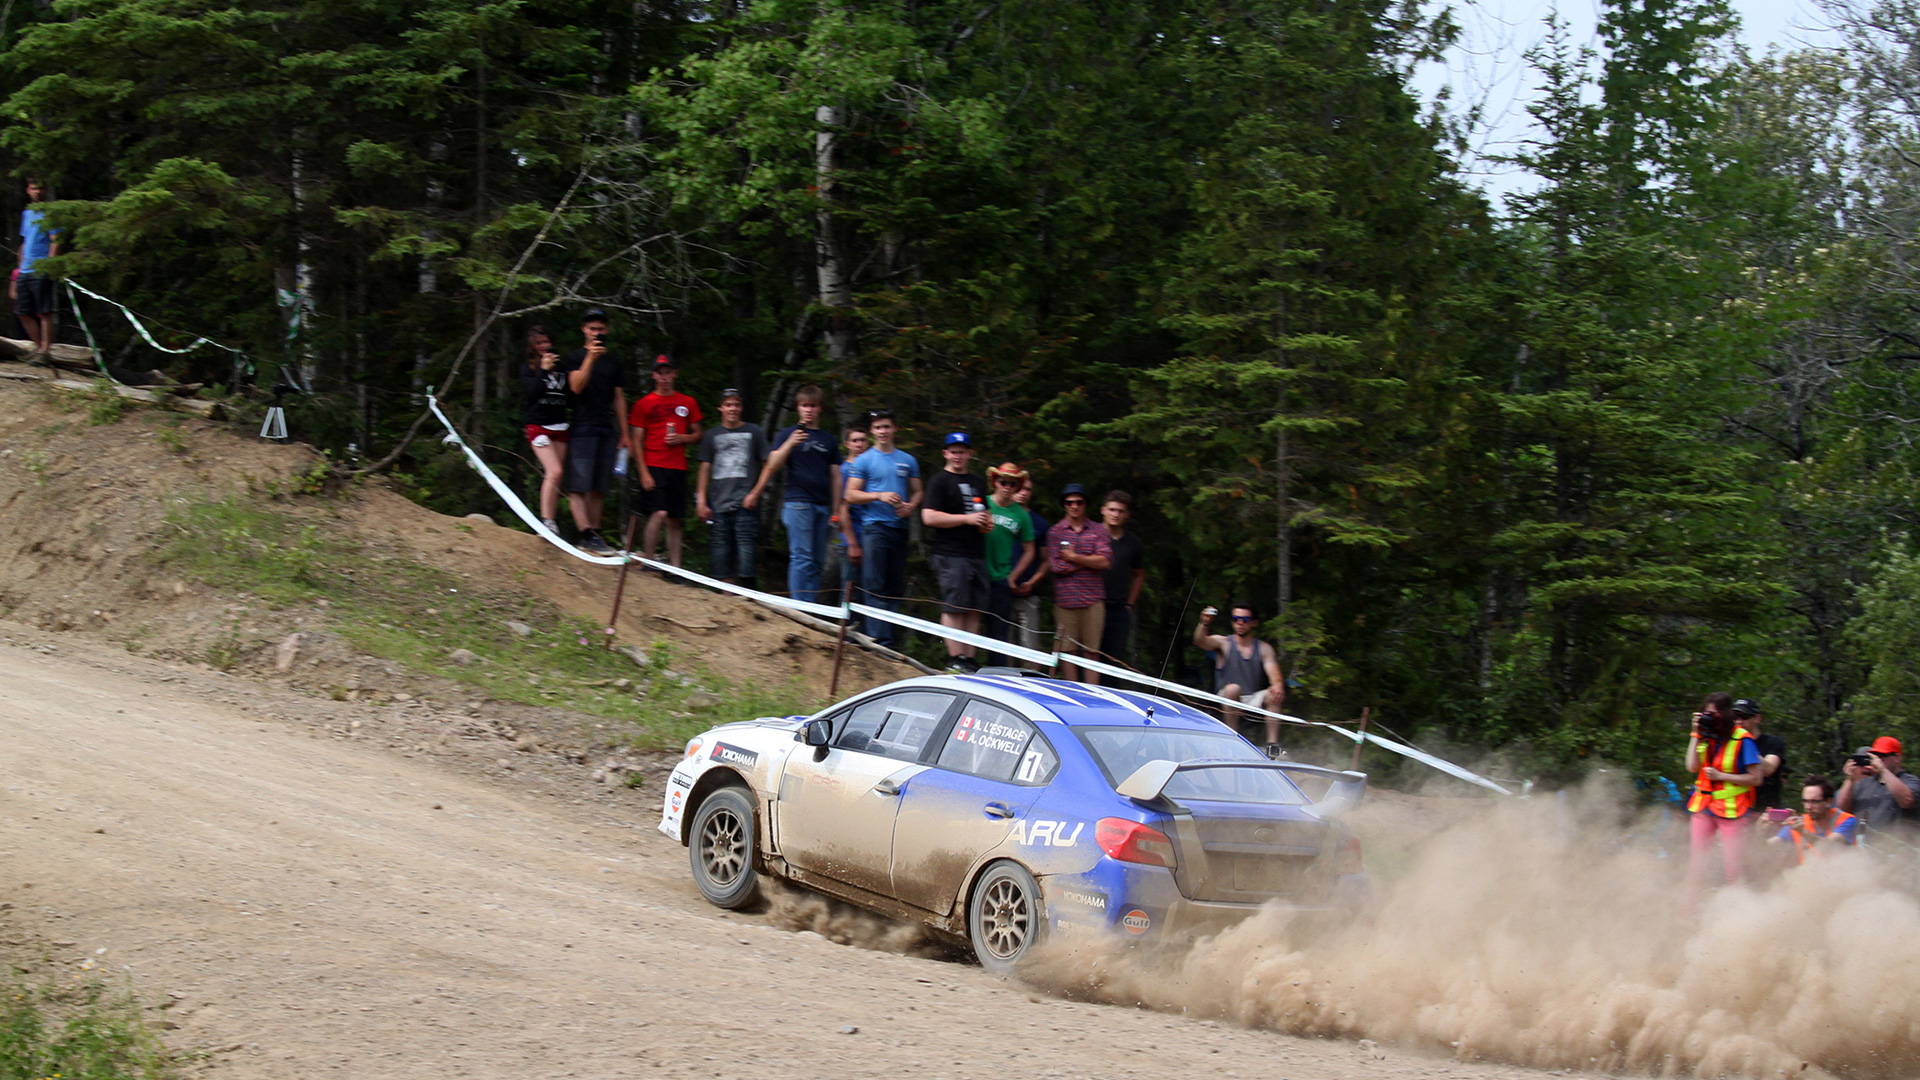 Rallyes canadiens